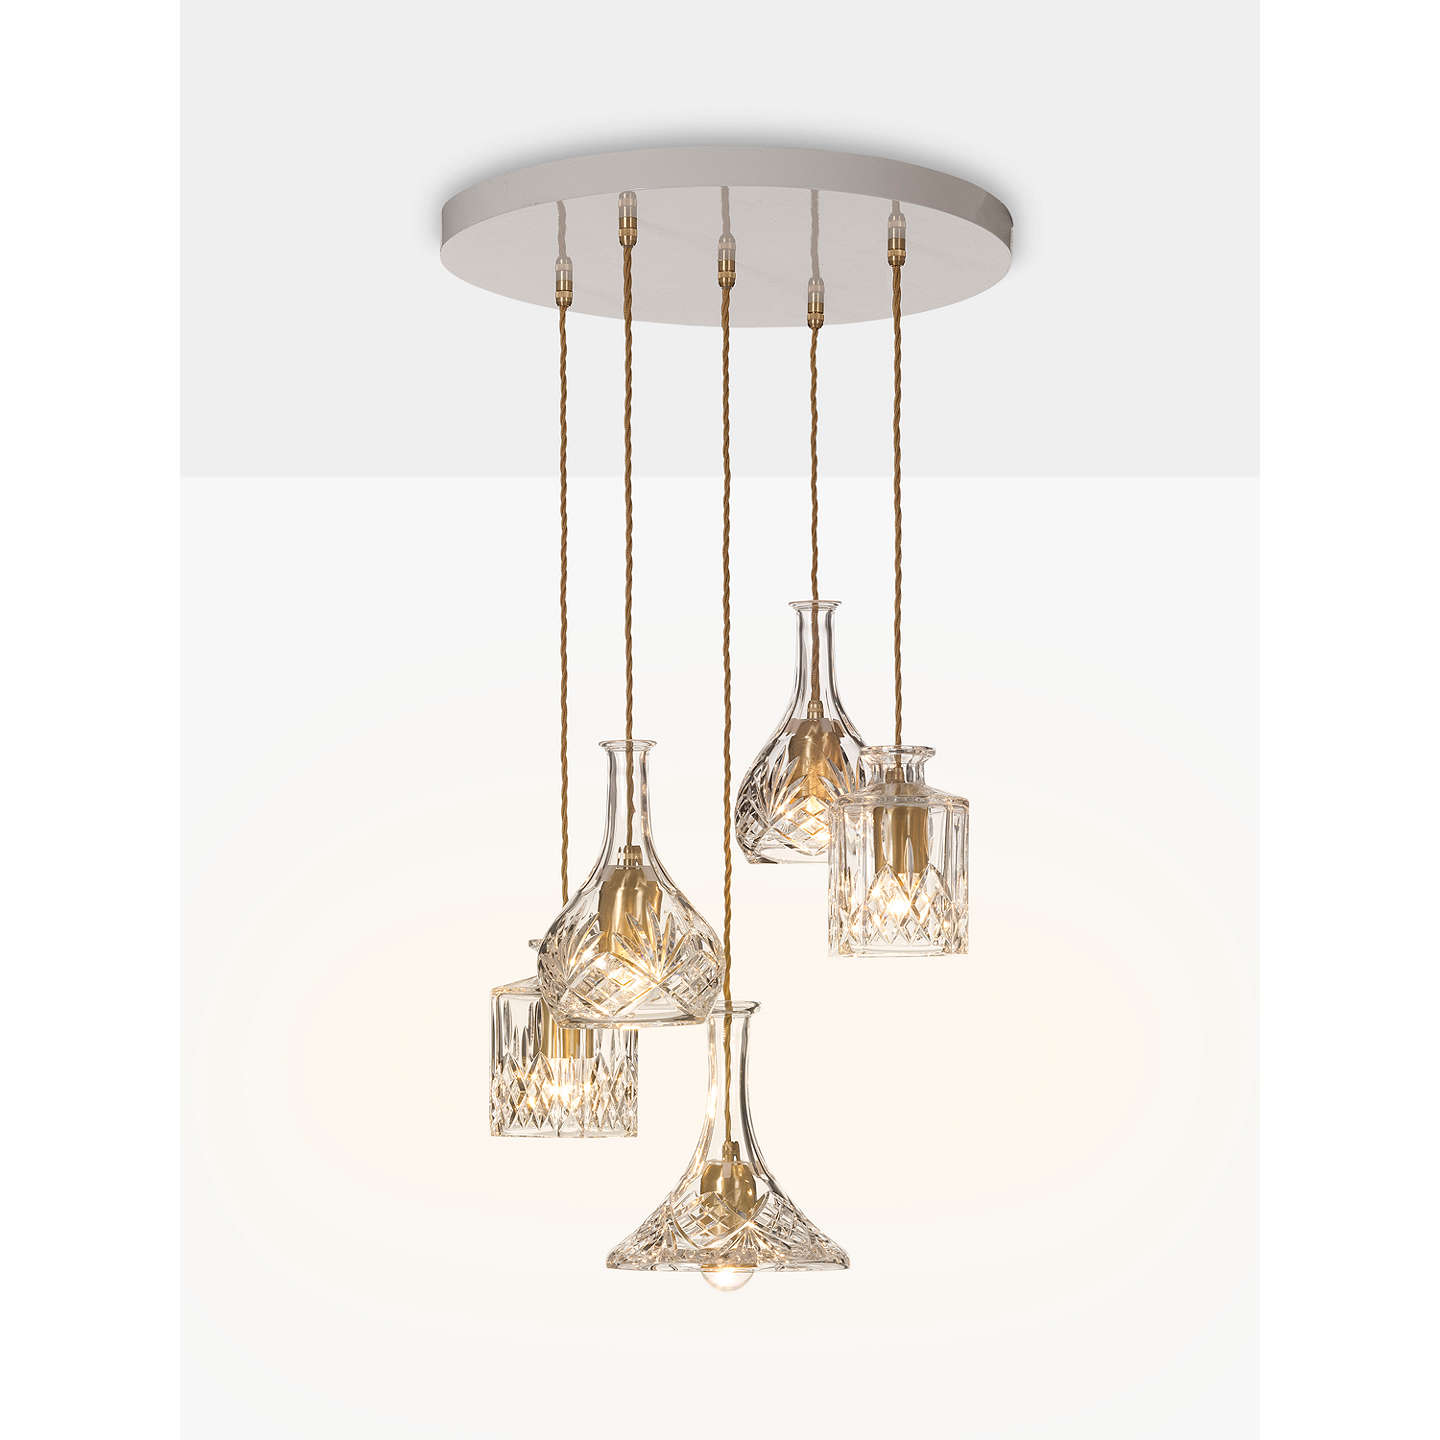 Lee broom decanter chandelier at john lewis buylee broom decanter chandelier online at johnlewis aloadofball Image collections